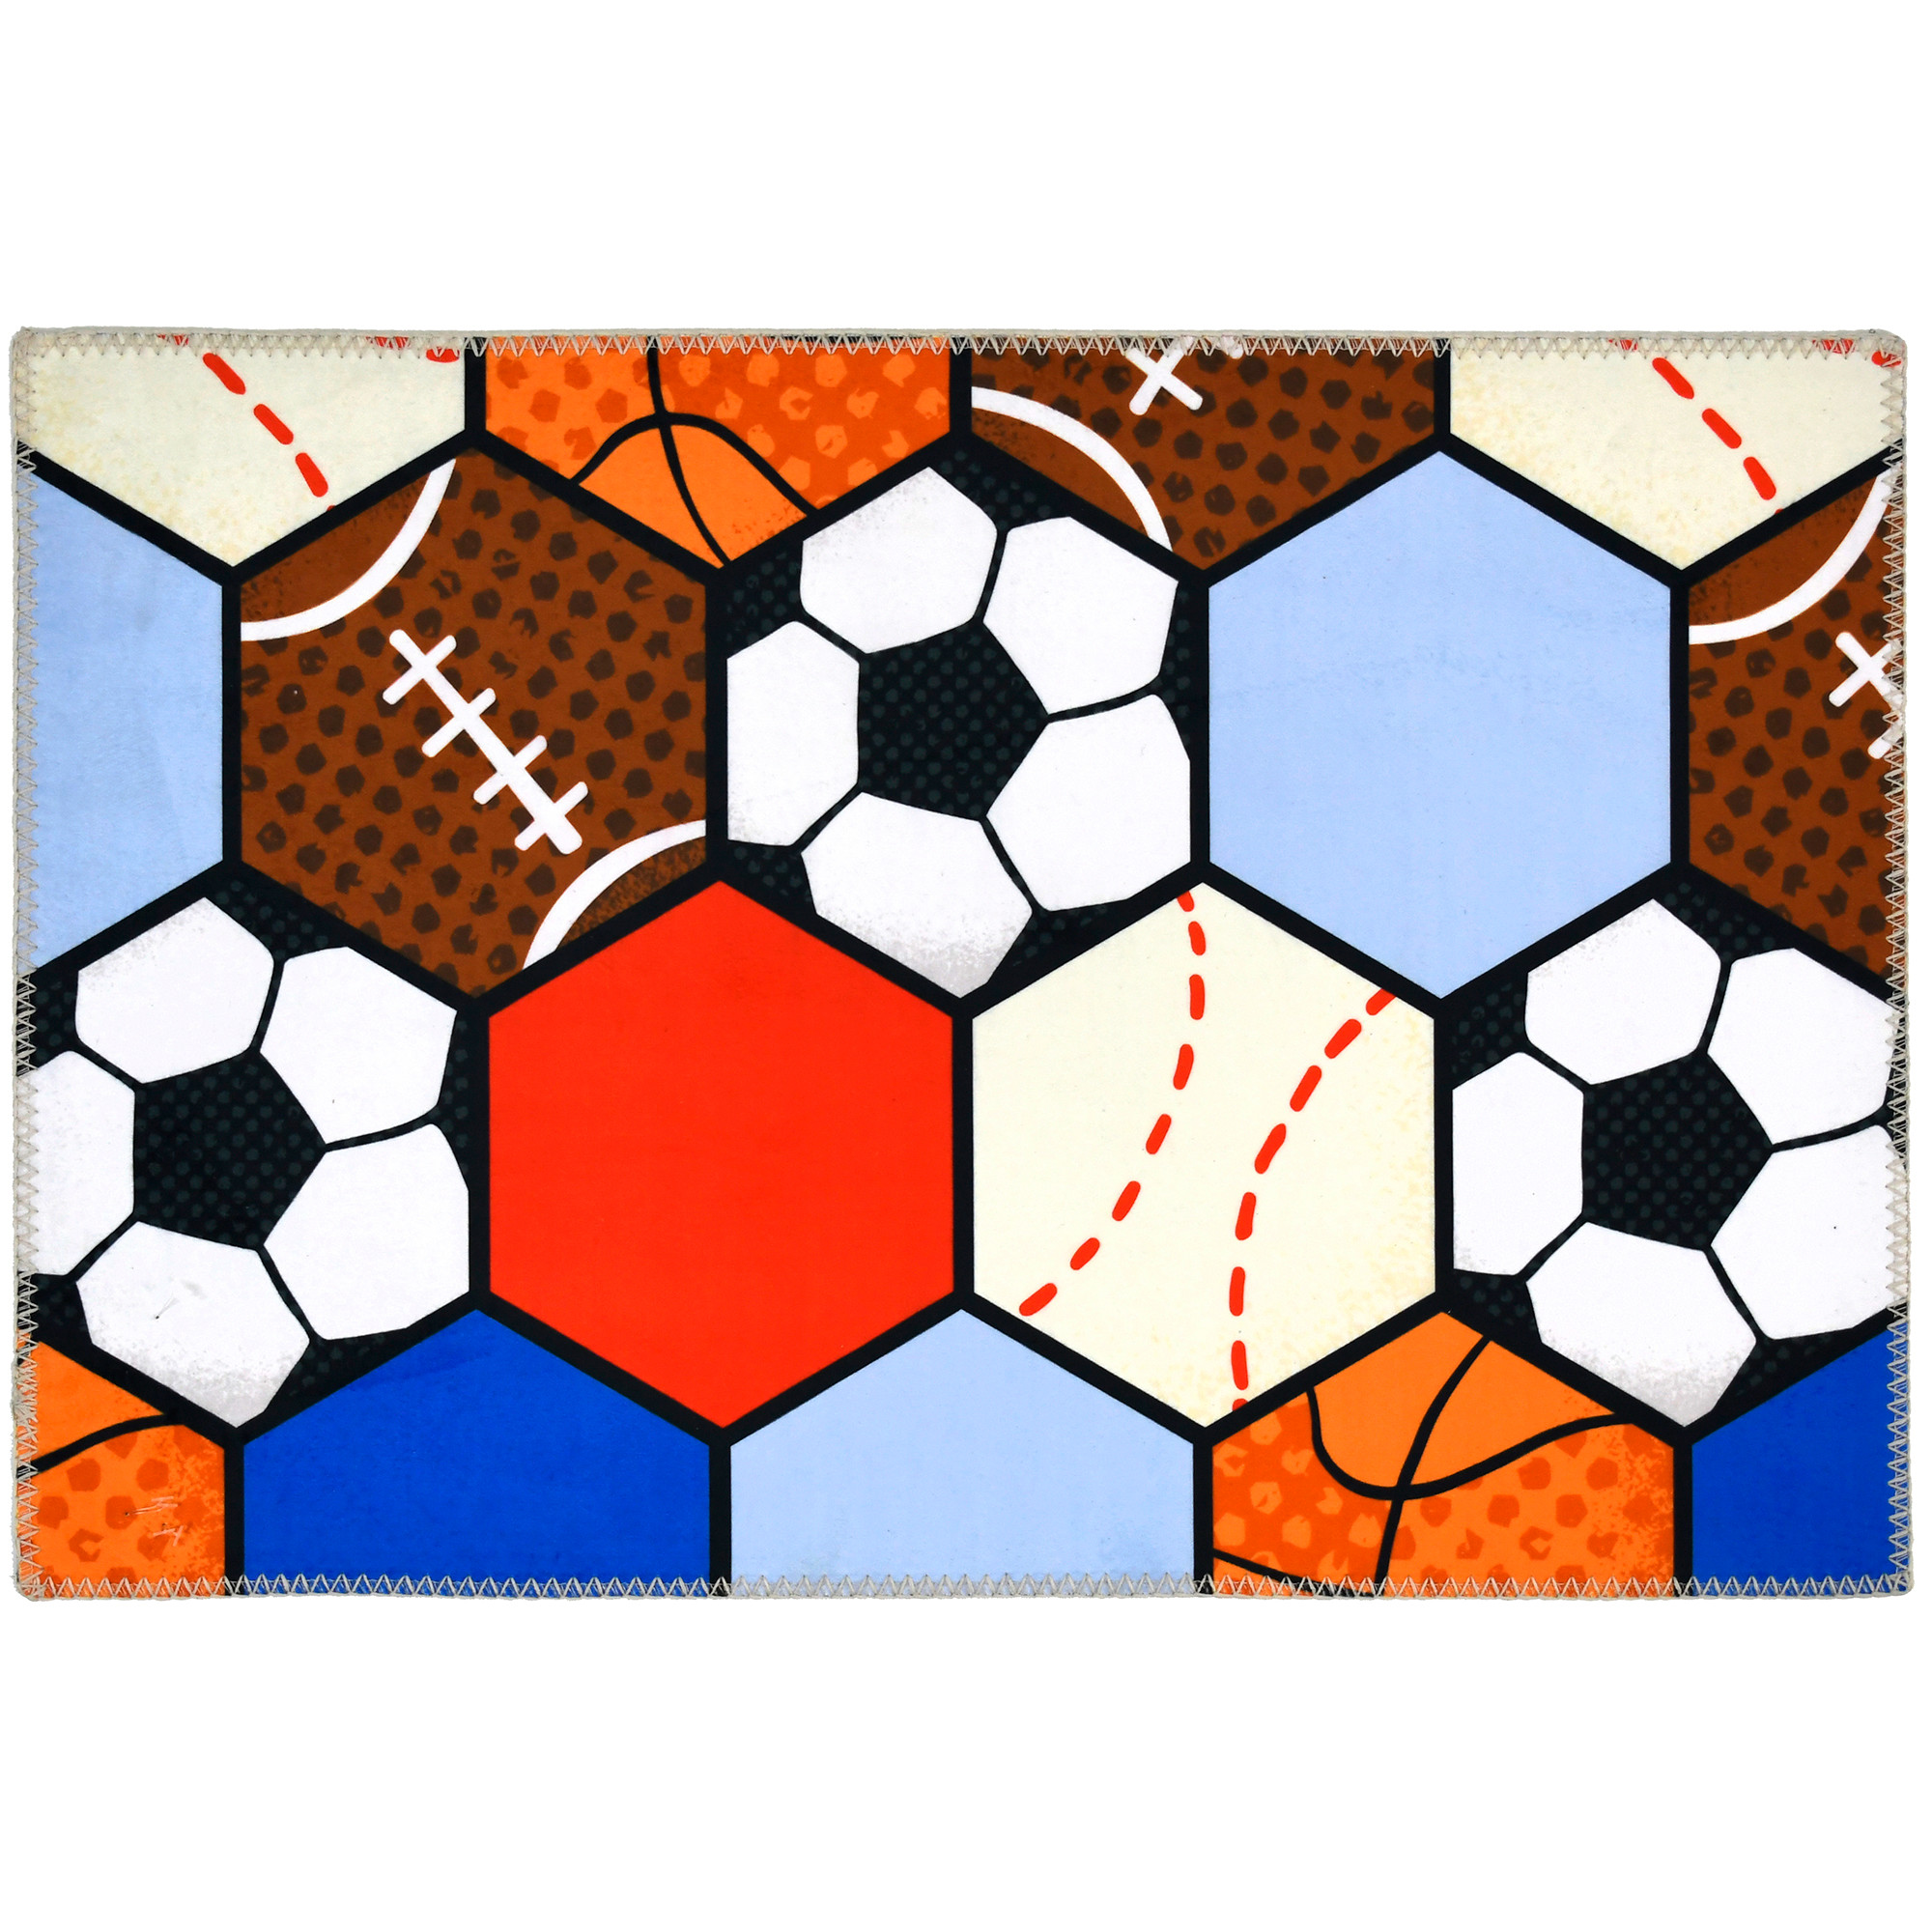 This Homefires by Jellybean® poly-suede floor cloth features an all-star creation by Heather Rosas. Hexagons of sports balls are printed on polyester providing a machine washable floor cloth, thin enough for a myriad of spaces. Available in four sizes, this floor cloth can be used in bedrooms, offices and classrooms alike.